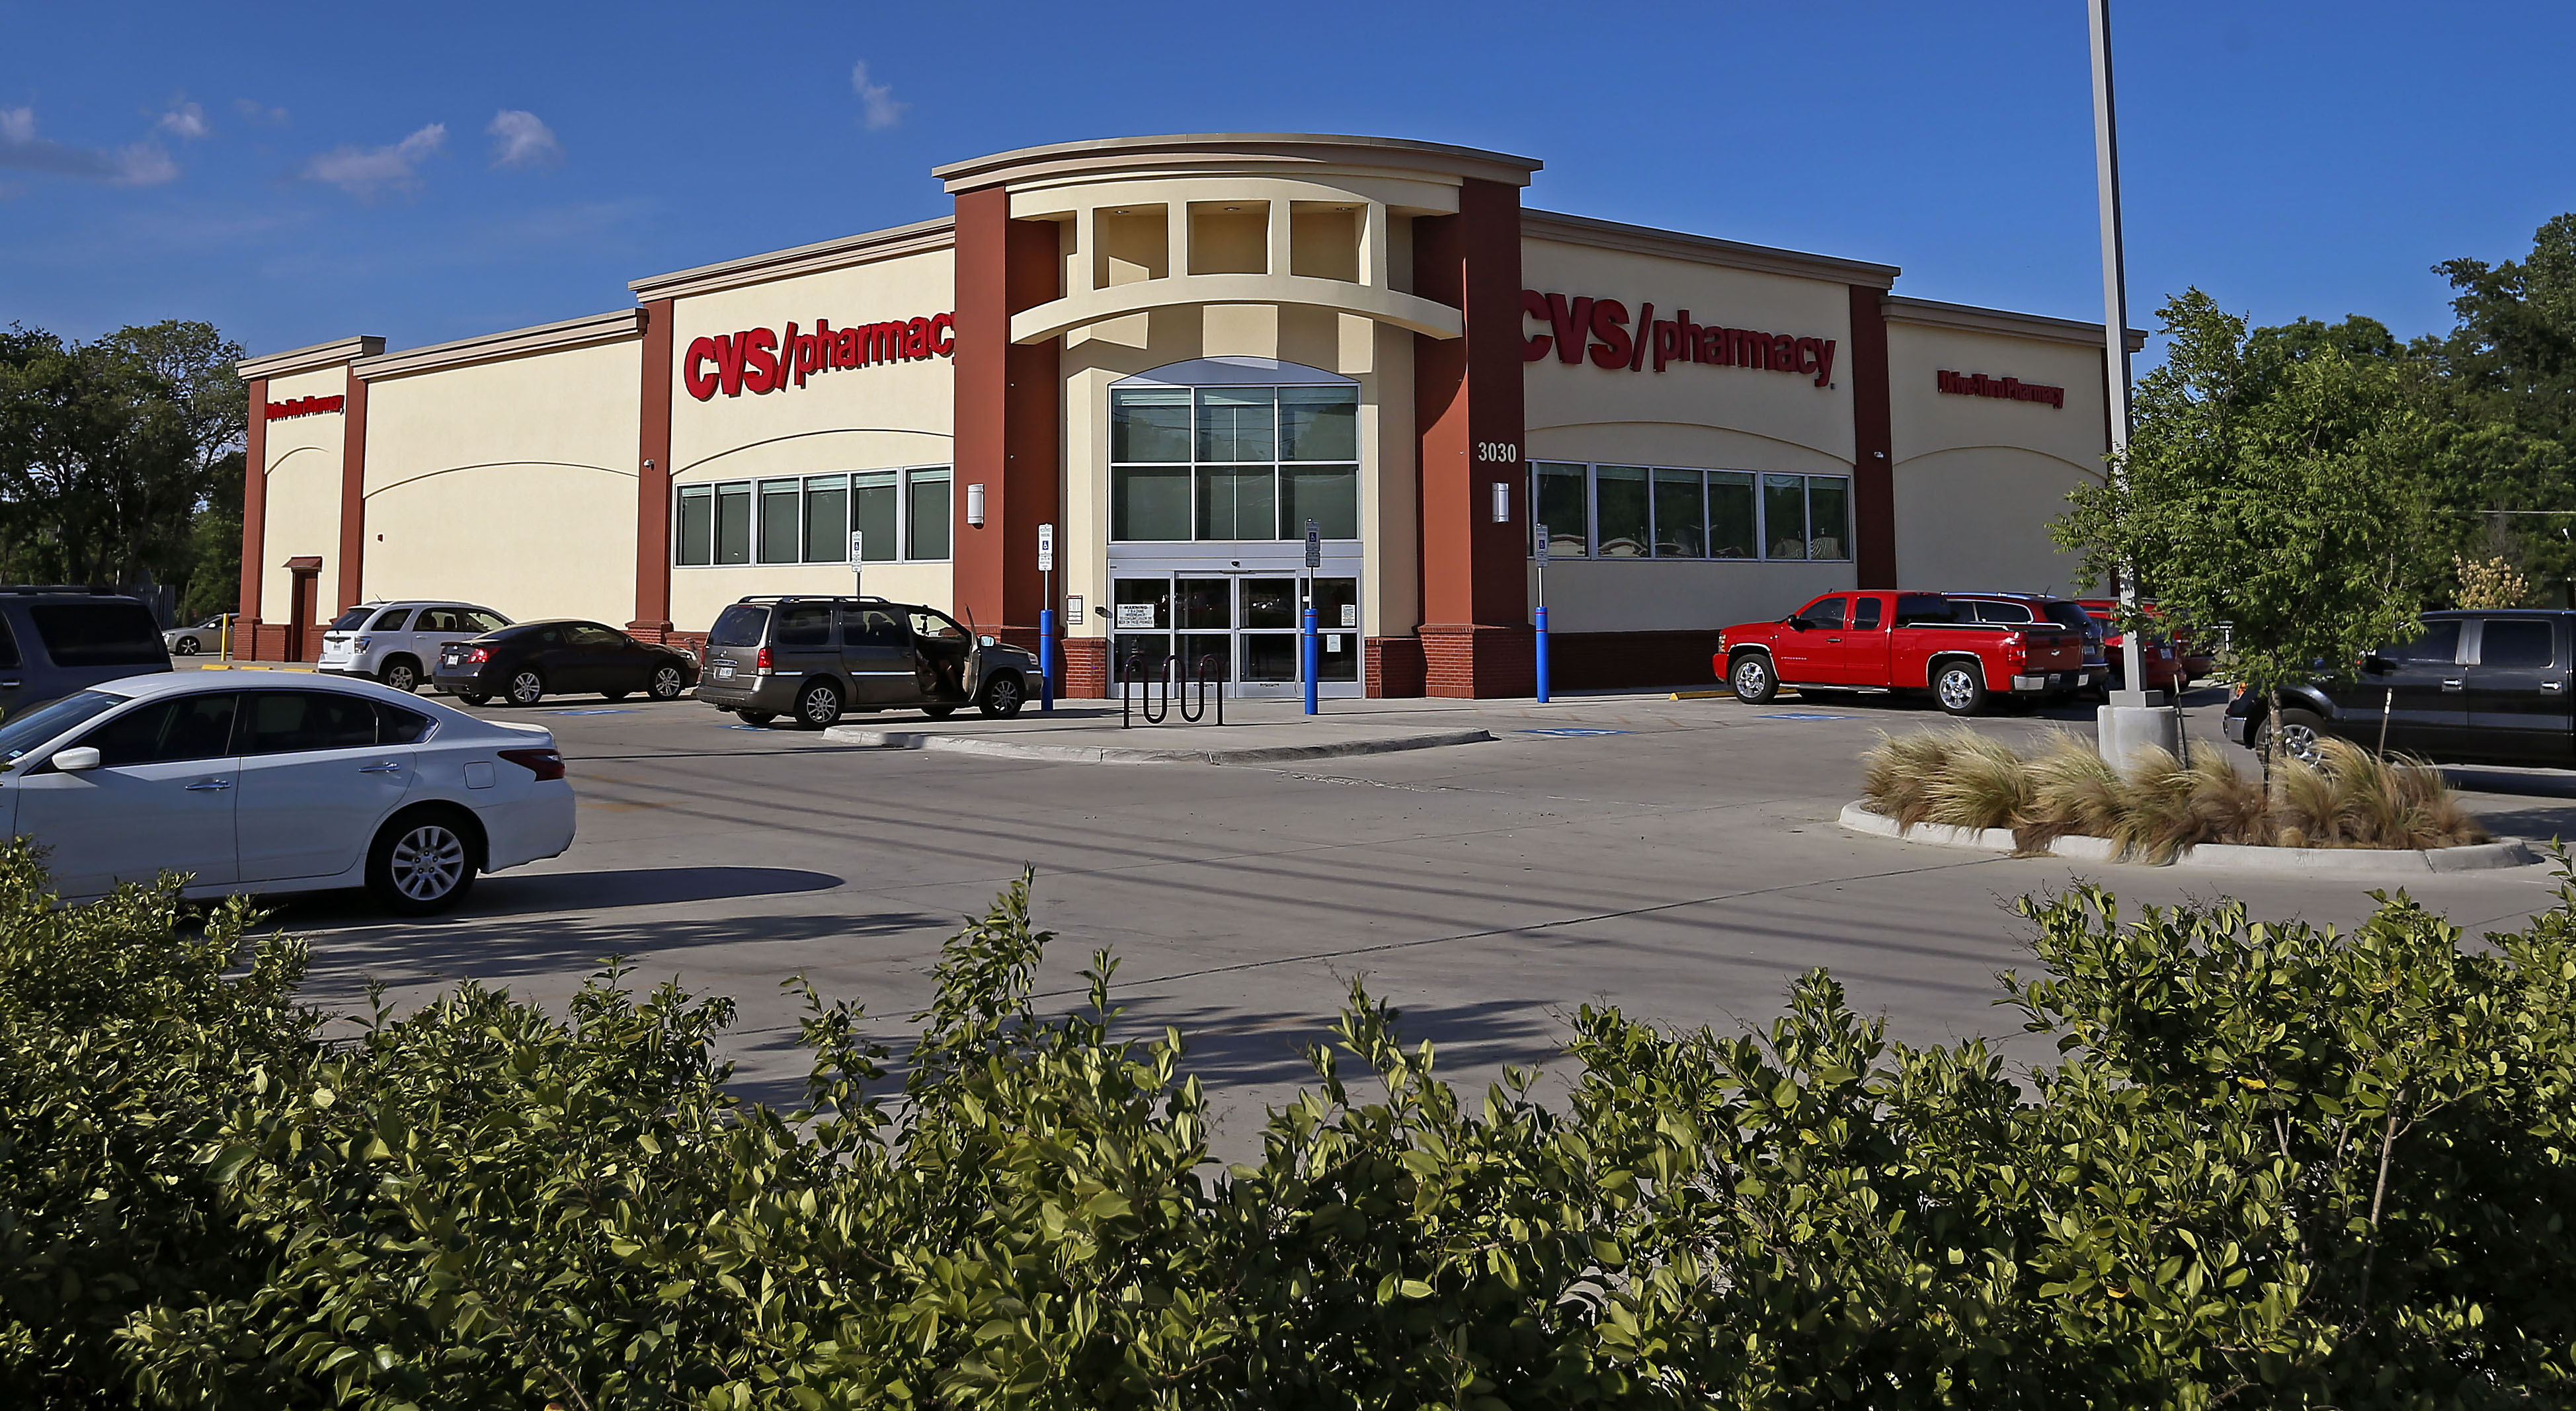 cvs commits urban malpractice with generic store designs that poison